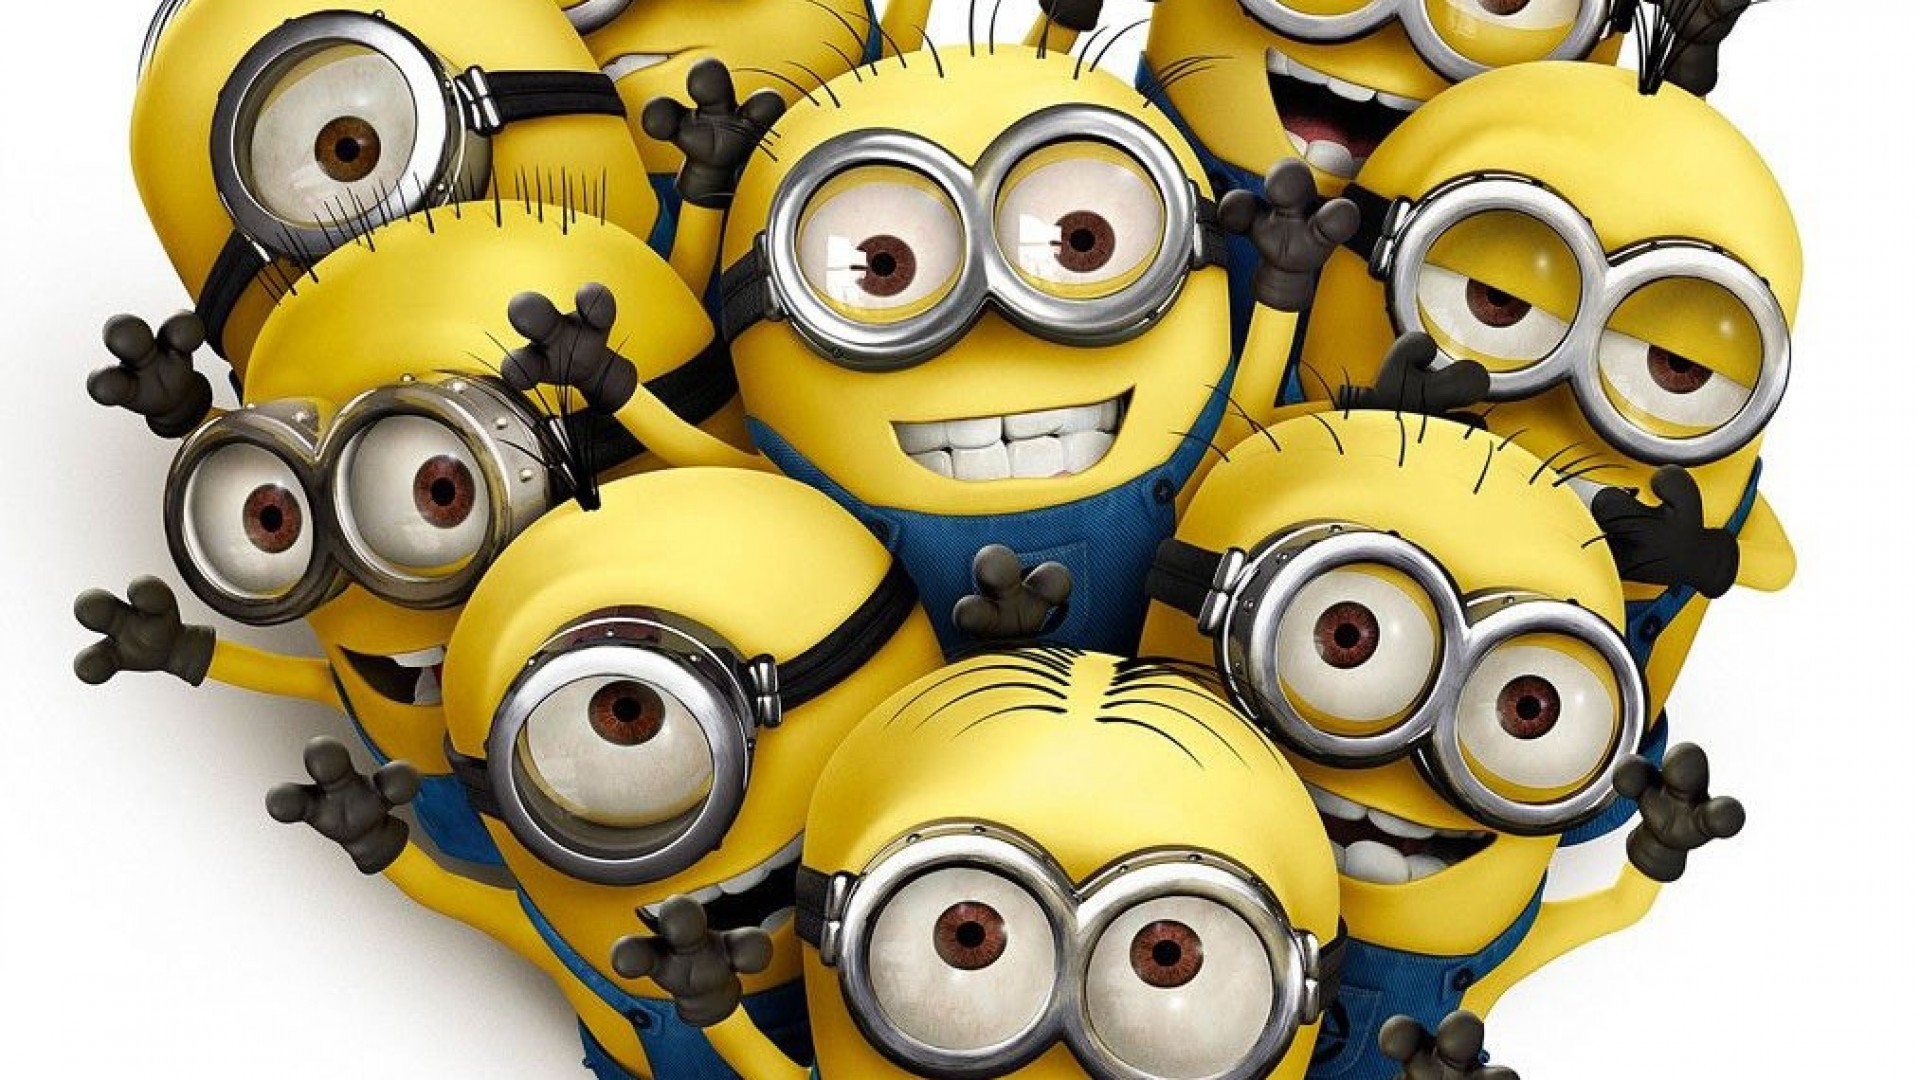 Awesome <b>Minions</b> Images Collection: <b>Minions Wallpapers</b> for <b>desktop</b> ...